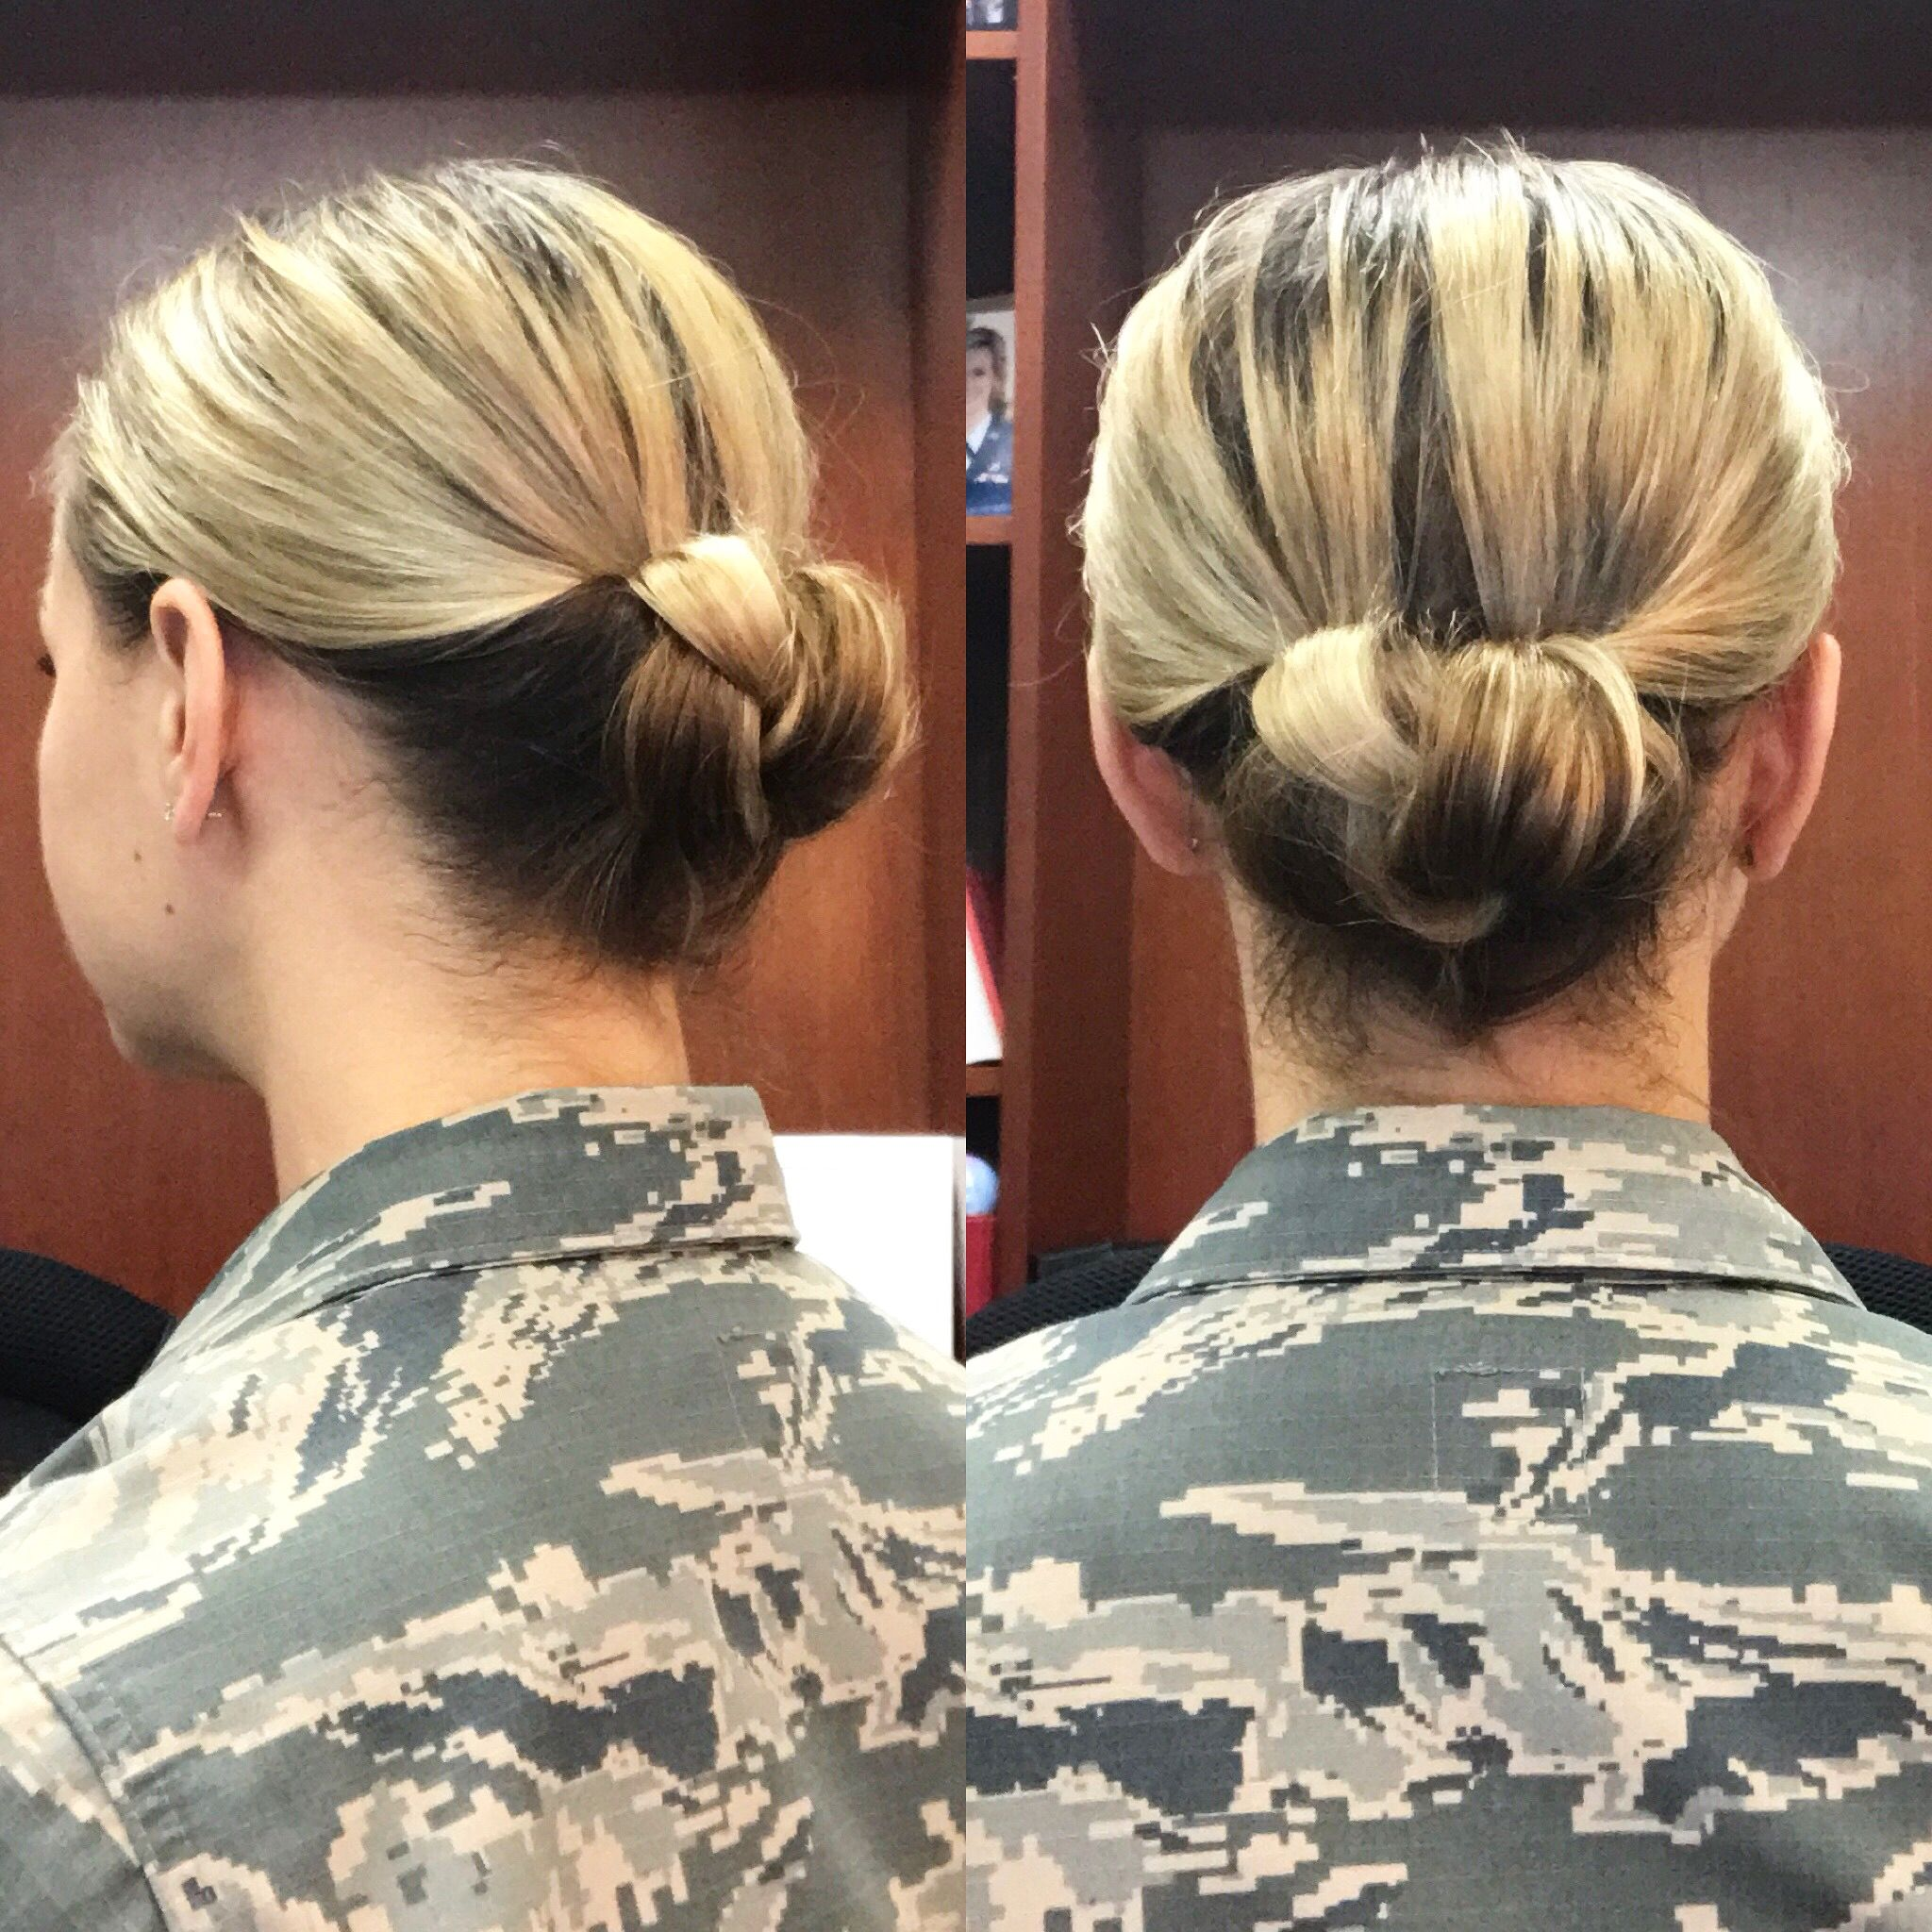 Brought To You From The Desk Of Lieutenant Rowe Today S Military Bun Is A Braided Gibson Tuck Army Military Bun Bun Hairstyles Bun Hairstyles For Long Hair